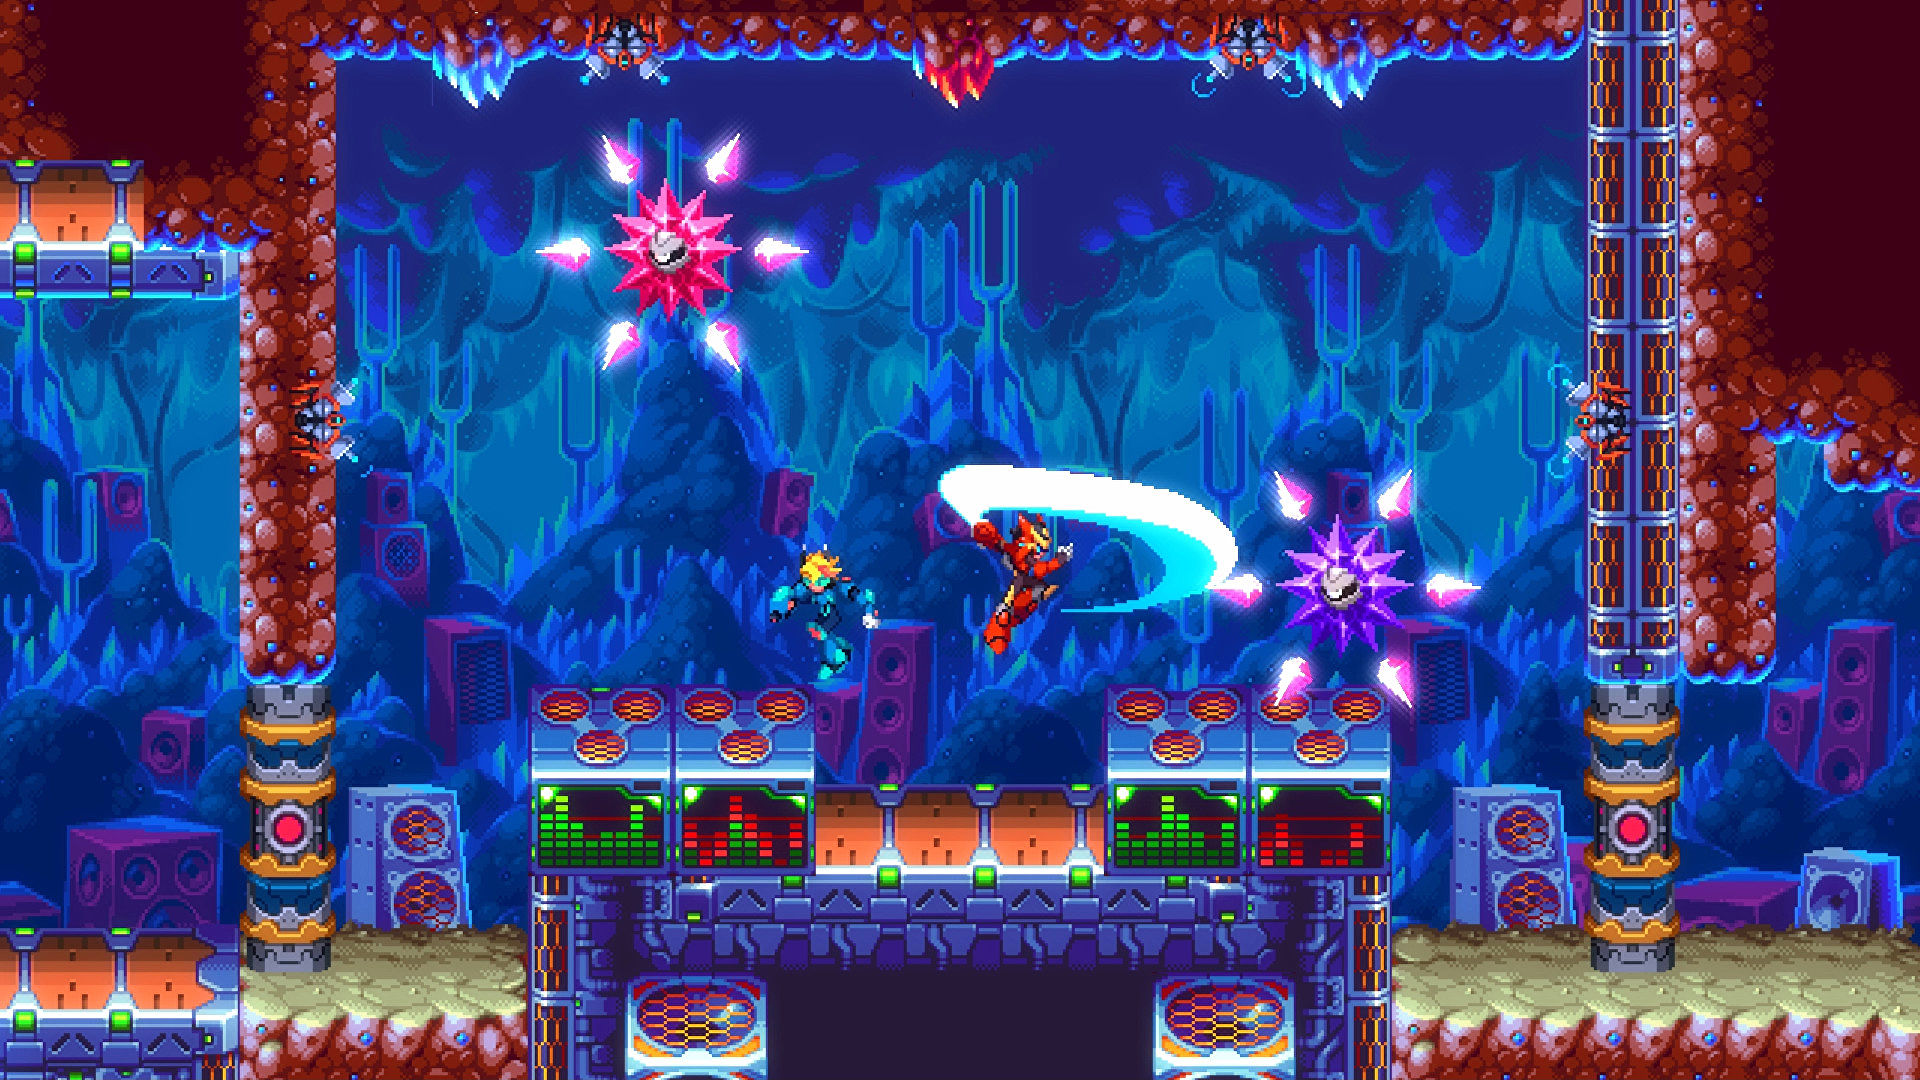 Roguelike platformer 30XX launches in early access